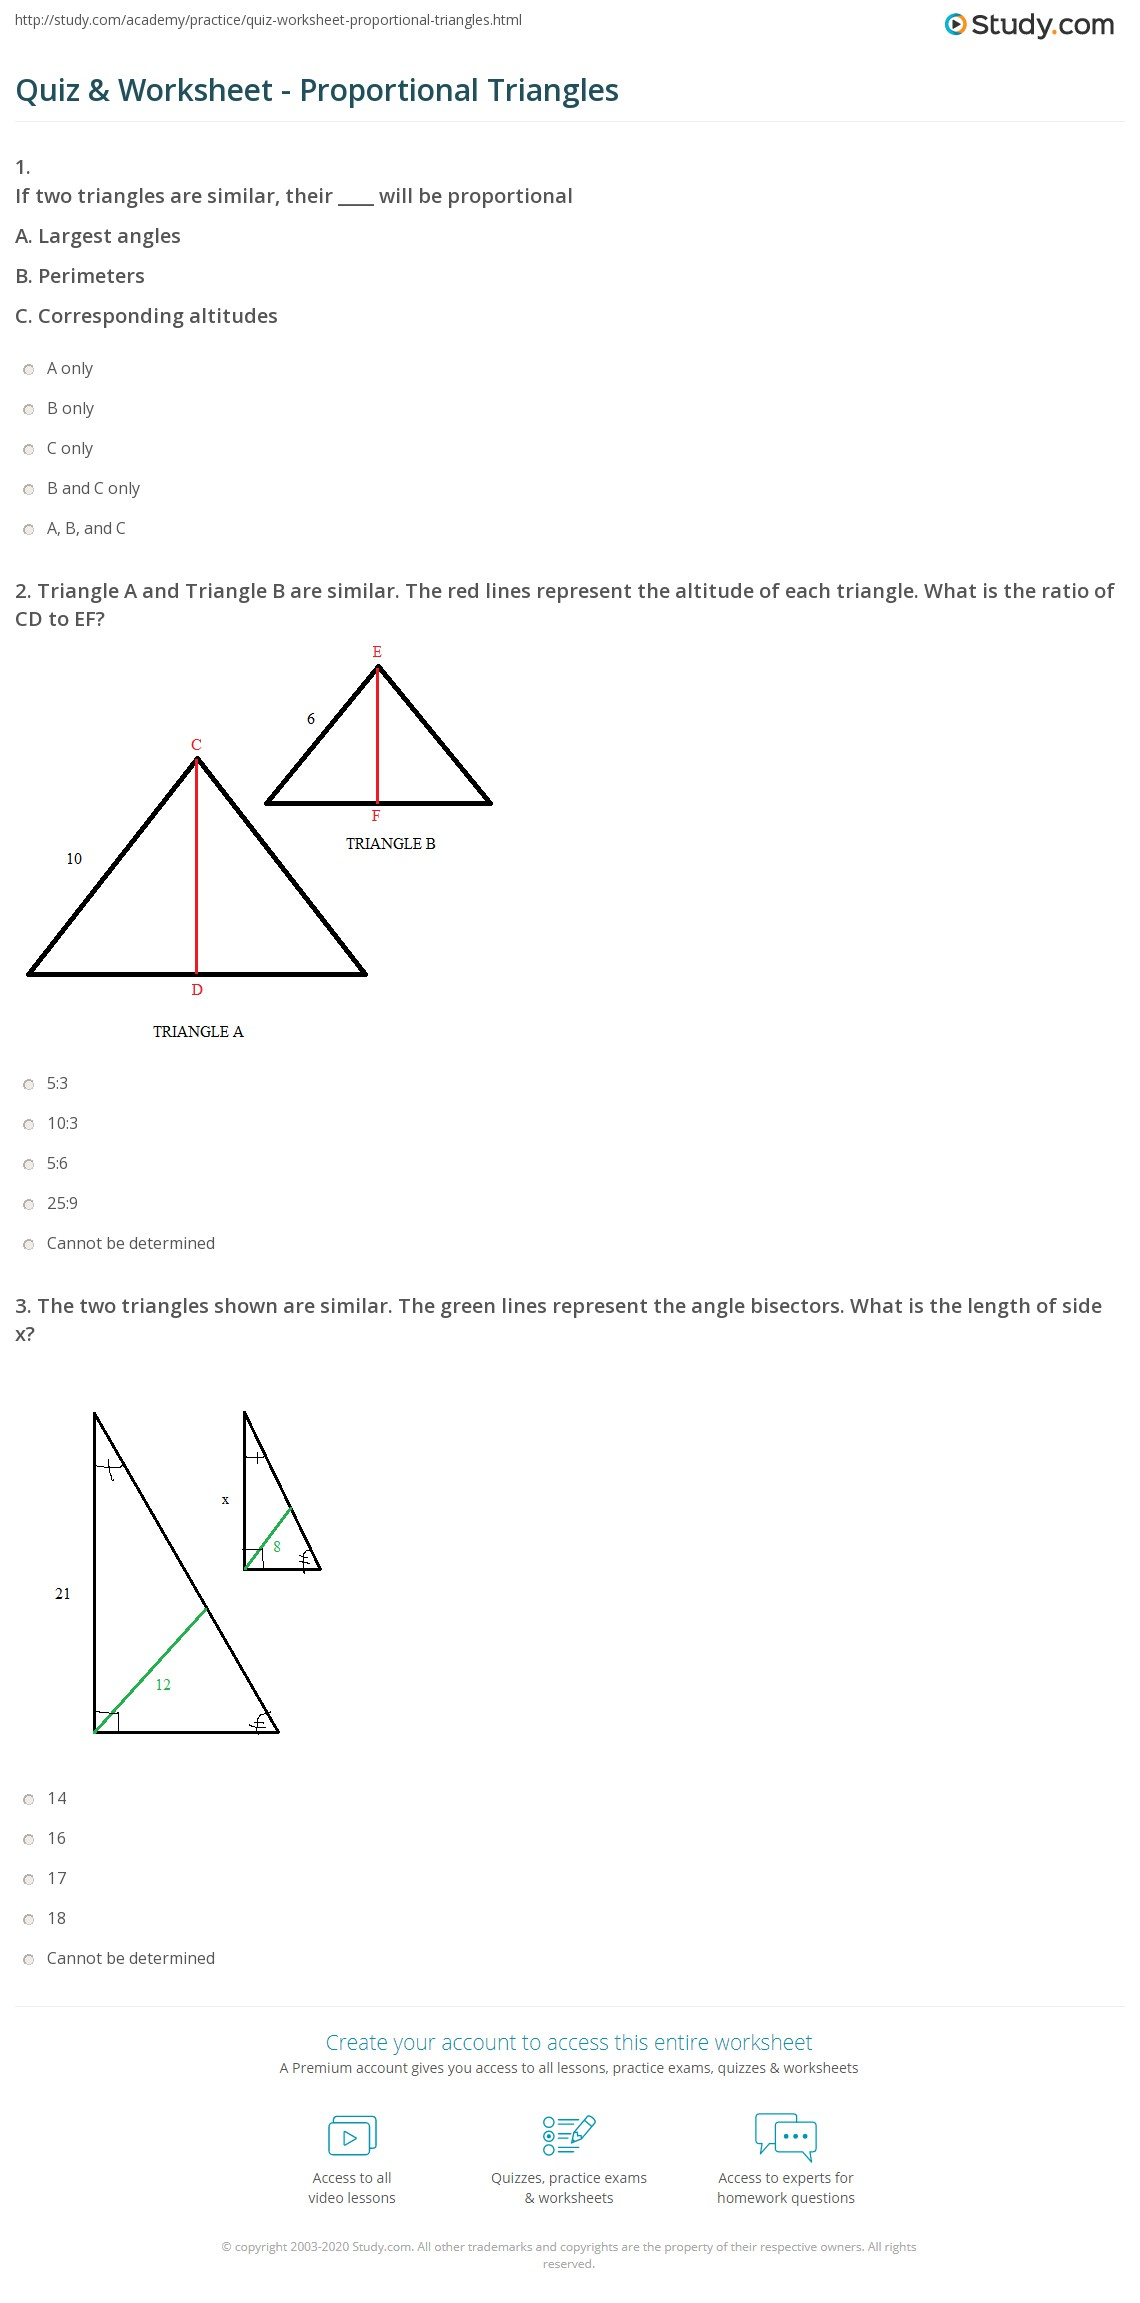 Worksheets Proving Triangles Similar Worksheet quiz worksheet proportional triangles study com print relationships in worksheet